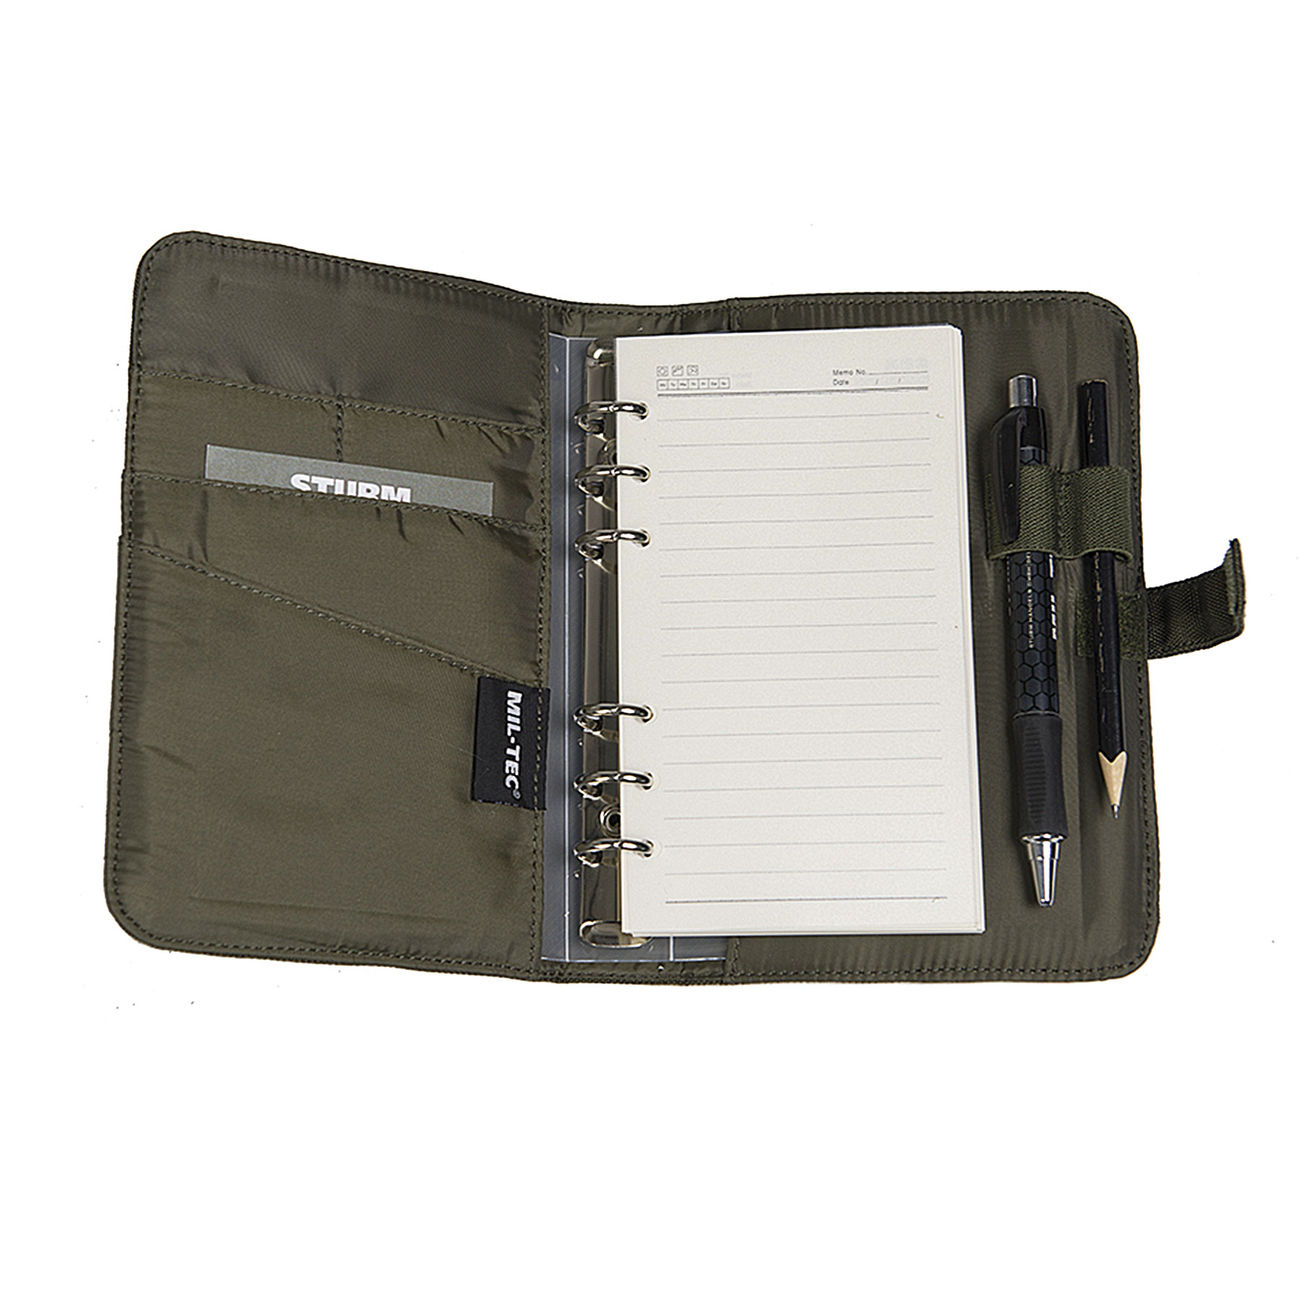 Kleidung & Accessoires Mil-tec Tactical Notebook Small Multitarn Notizbuch